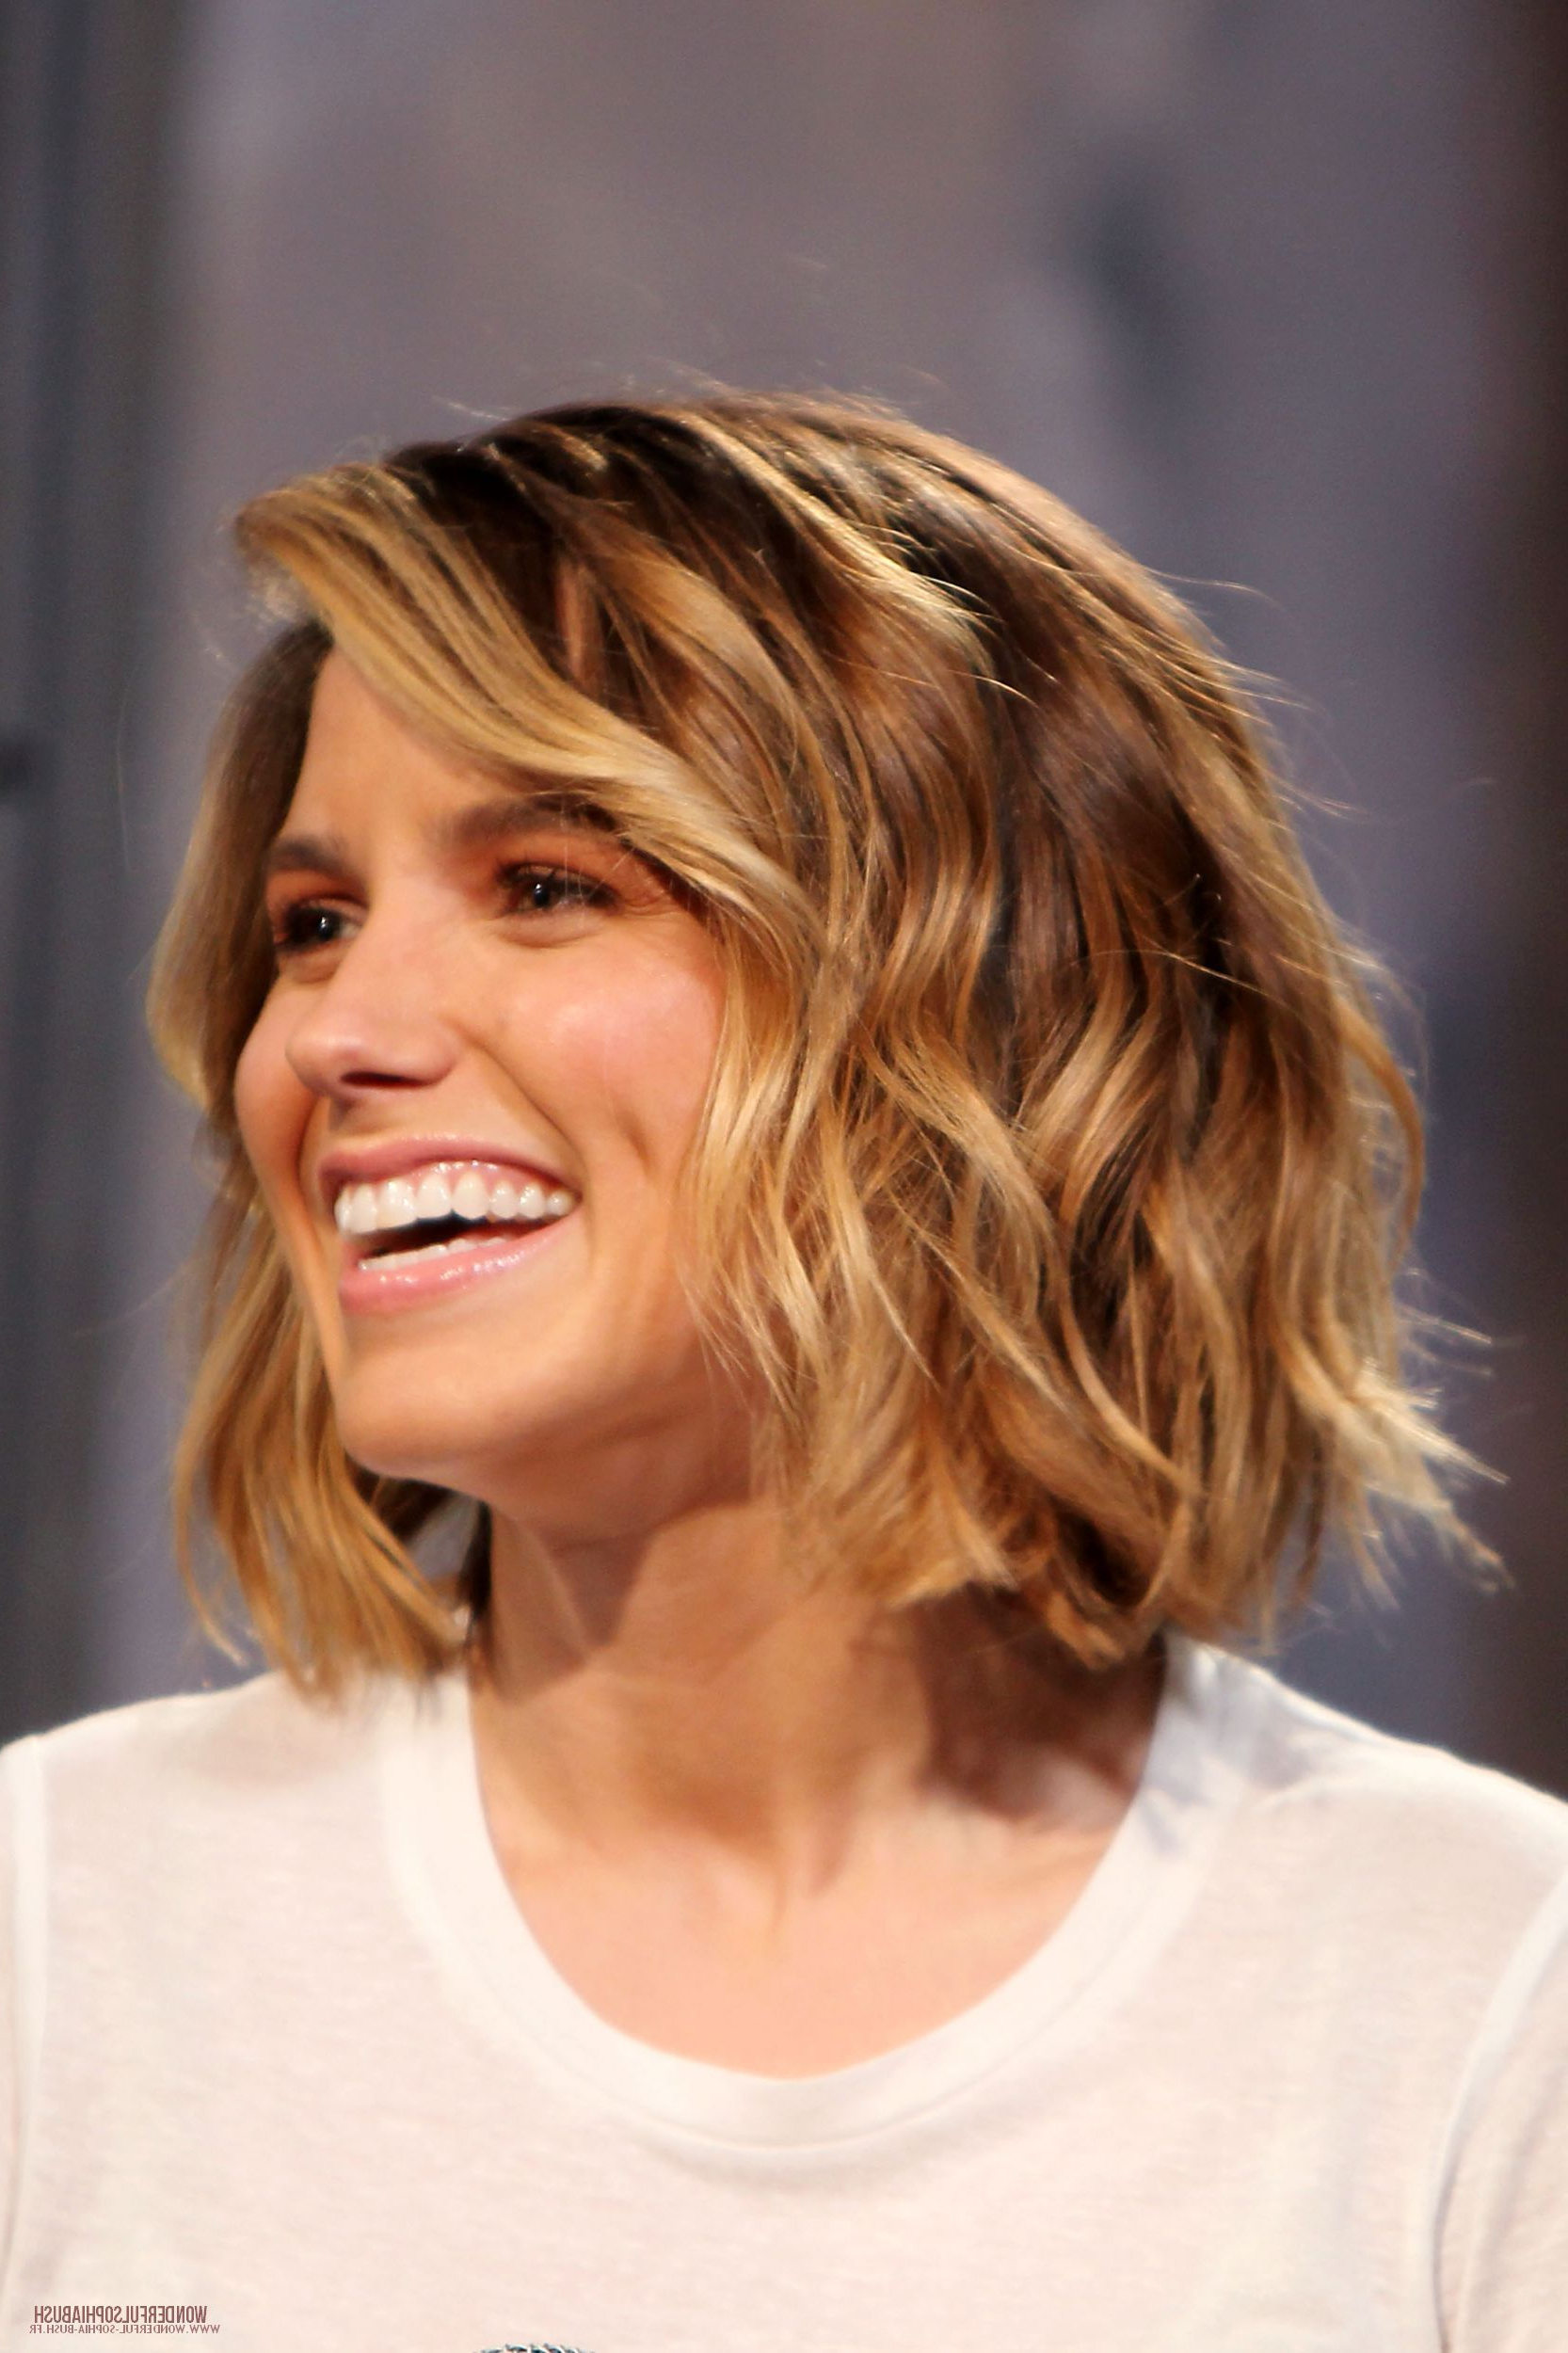 Sophia Bush @ Aolbuild – 09.29.15 (Gallery 2 of 20)